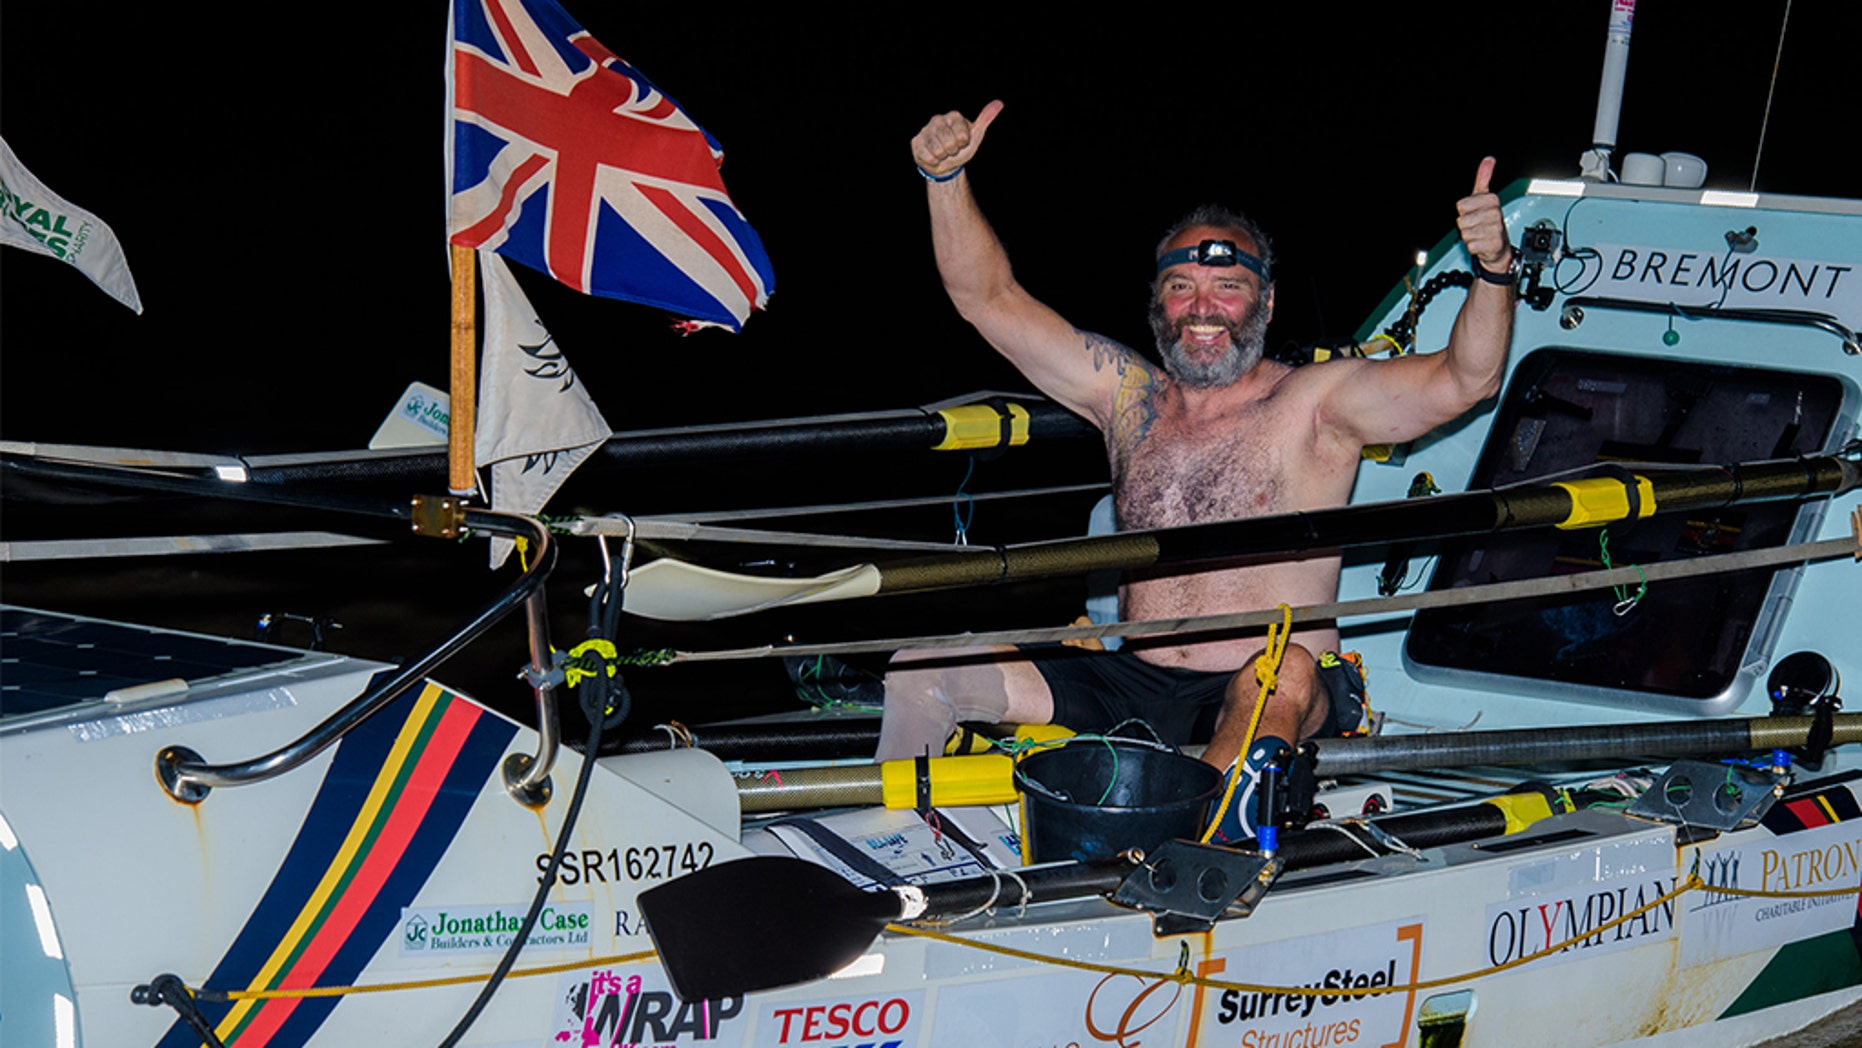 Lee Spencer celebrates after arriving in Cayenne, French Guiana early Monday. (Photo by Anthony Upton/ Rowing Marine via Getty Images)